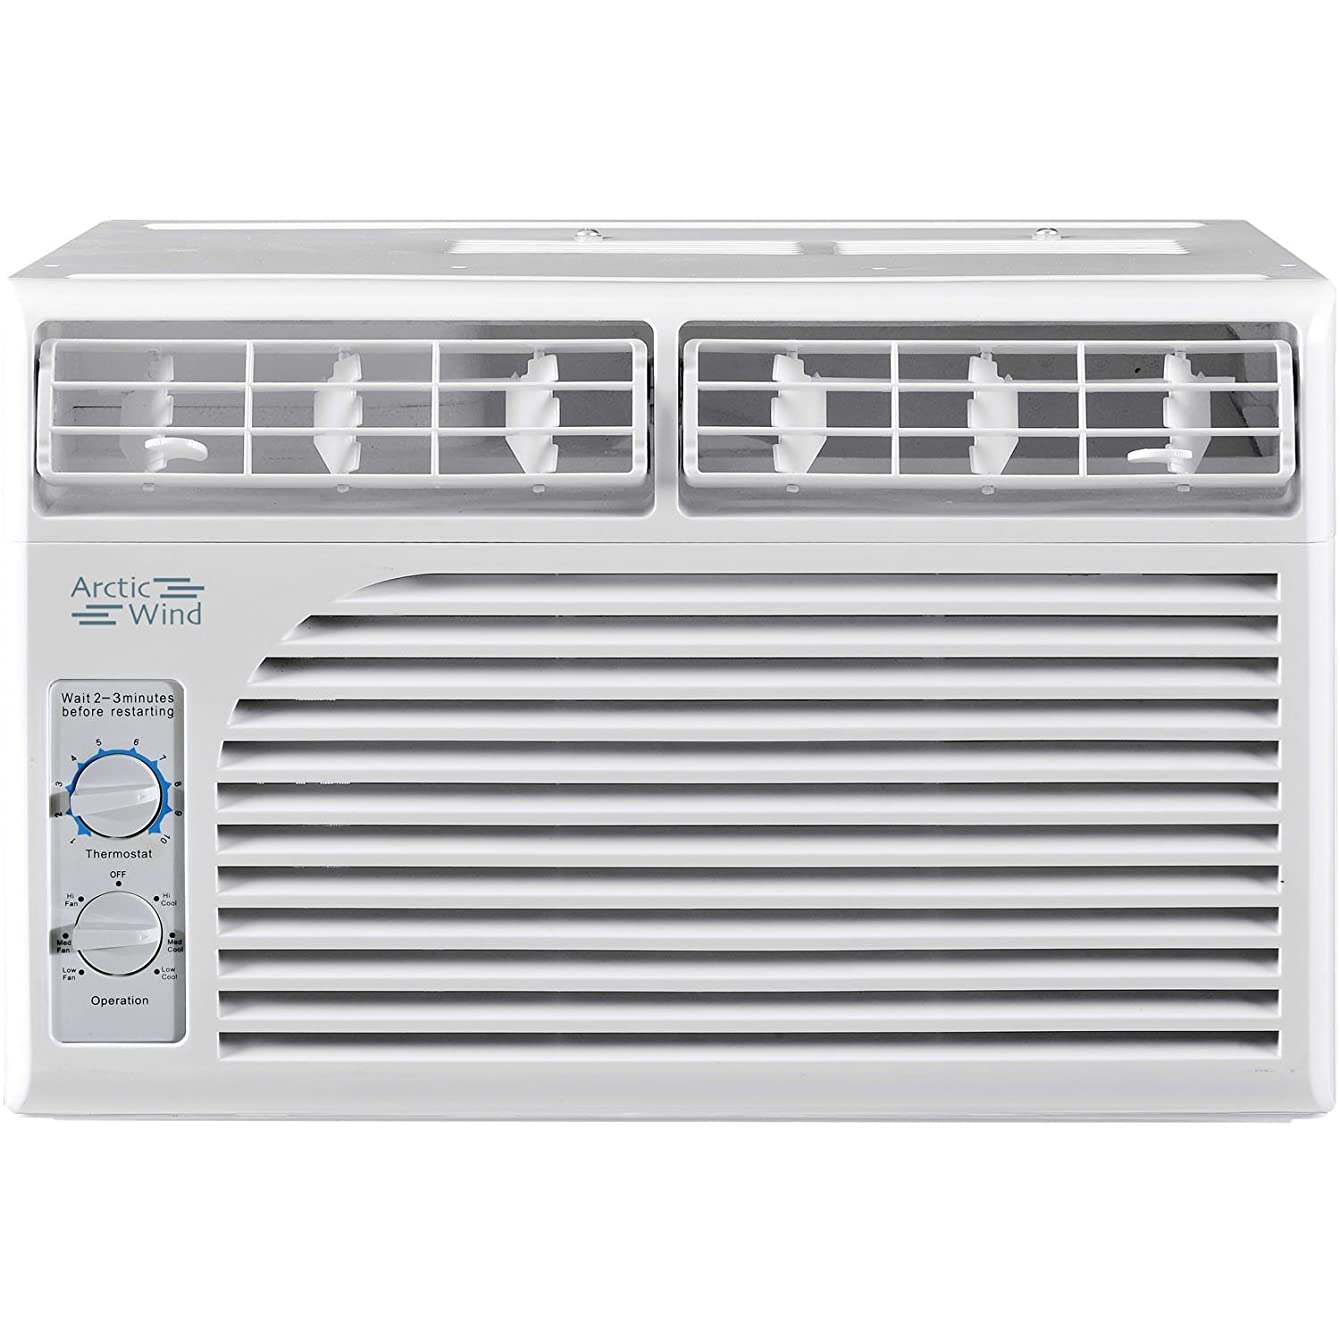 ARCTIC Wind 5,000 BTU Window Air Conditioner with Mechanical Controls,